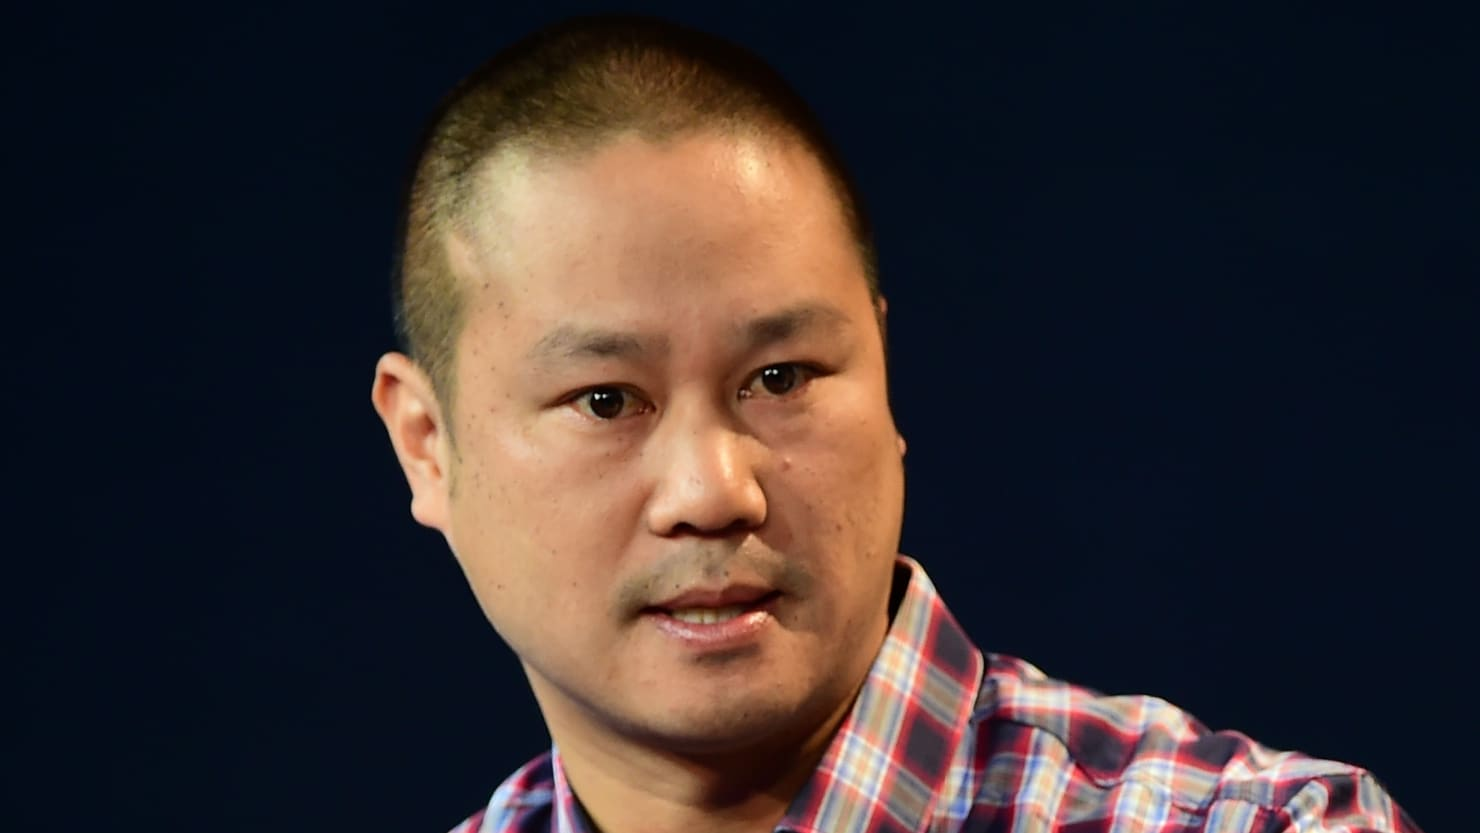 Tony Hsieh's $50M Utah Spending Spree Was a Wild End to a Wild Life